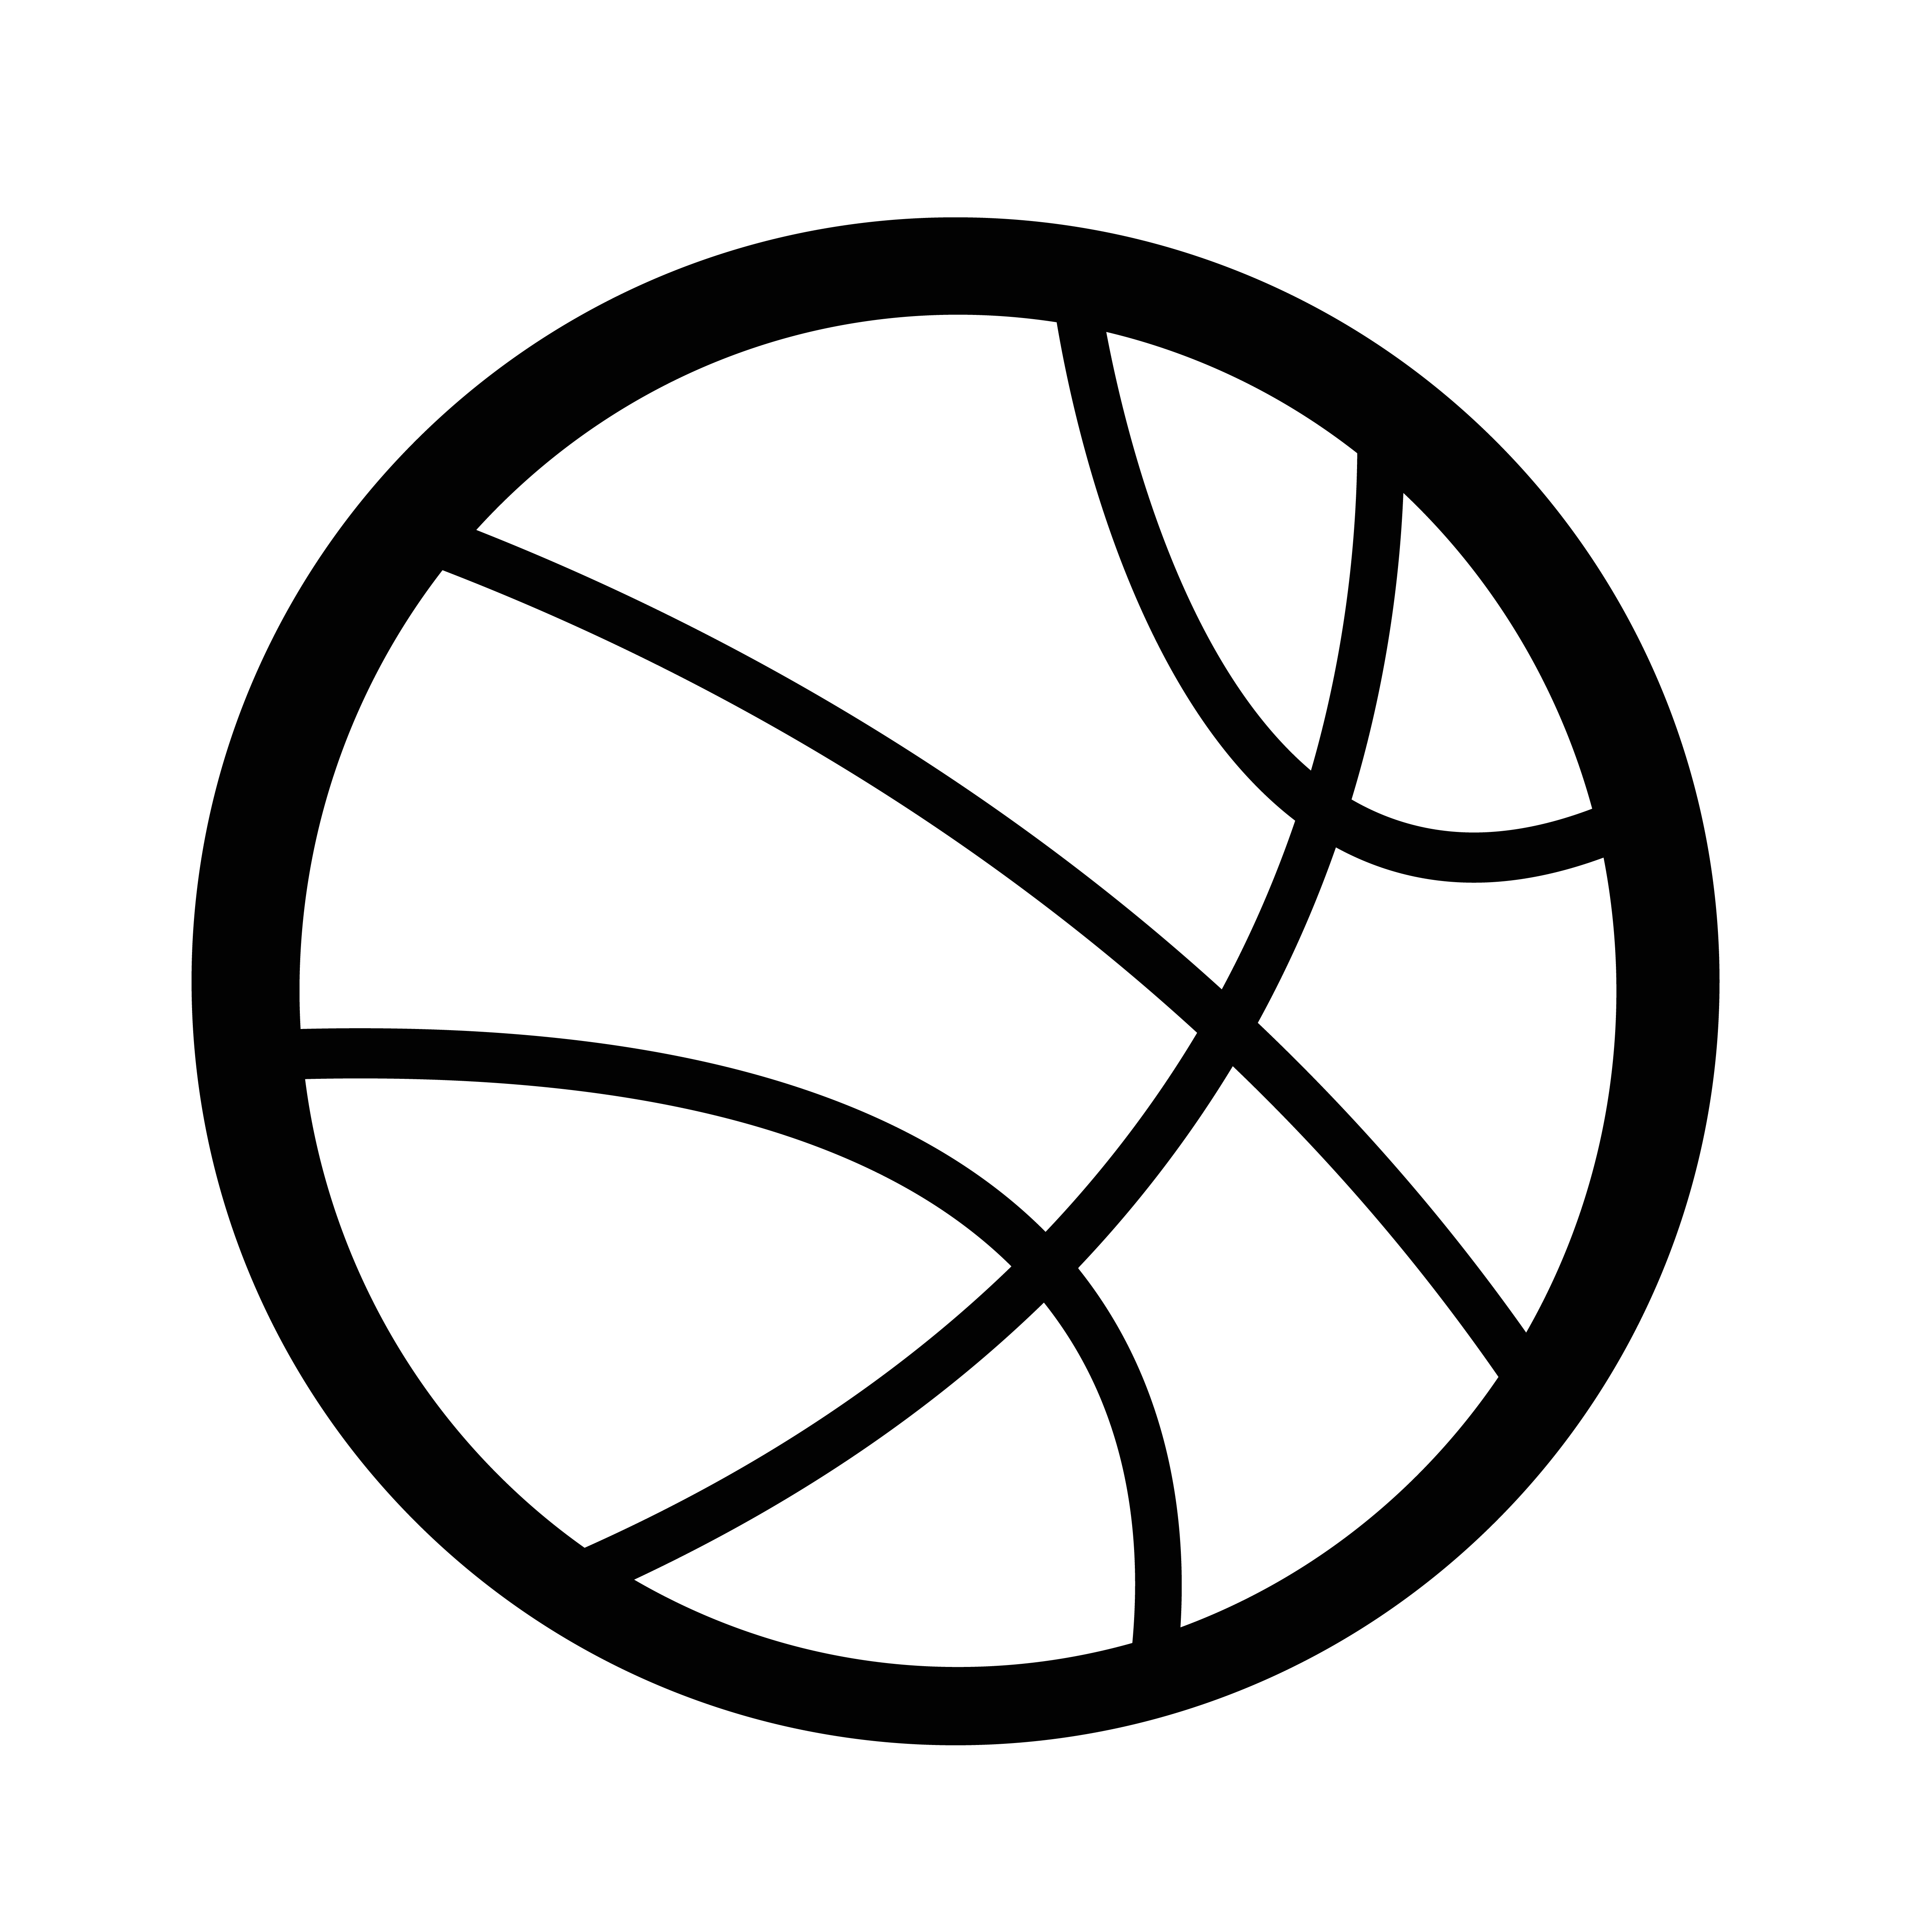 Basketball icon - Download Free Vectors, Clipart Graphics ...